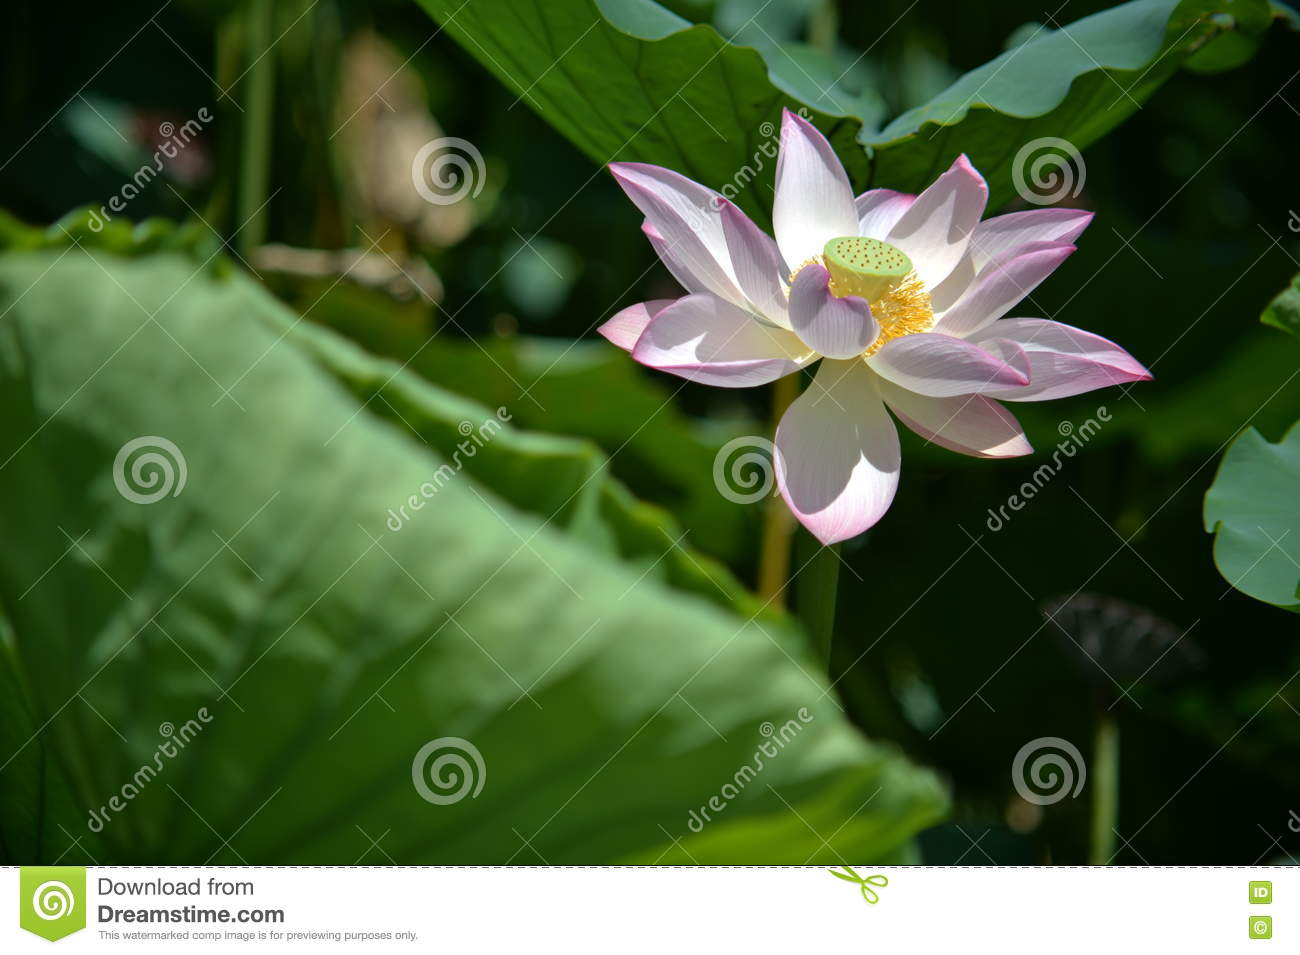 A fully blossomed lotus flower stock photo image of captured a fully blossomed lotus flower izmirmasajfo